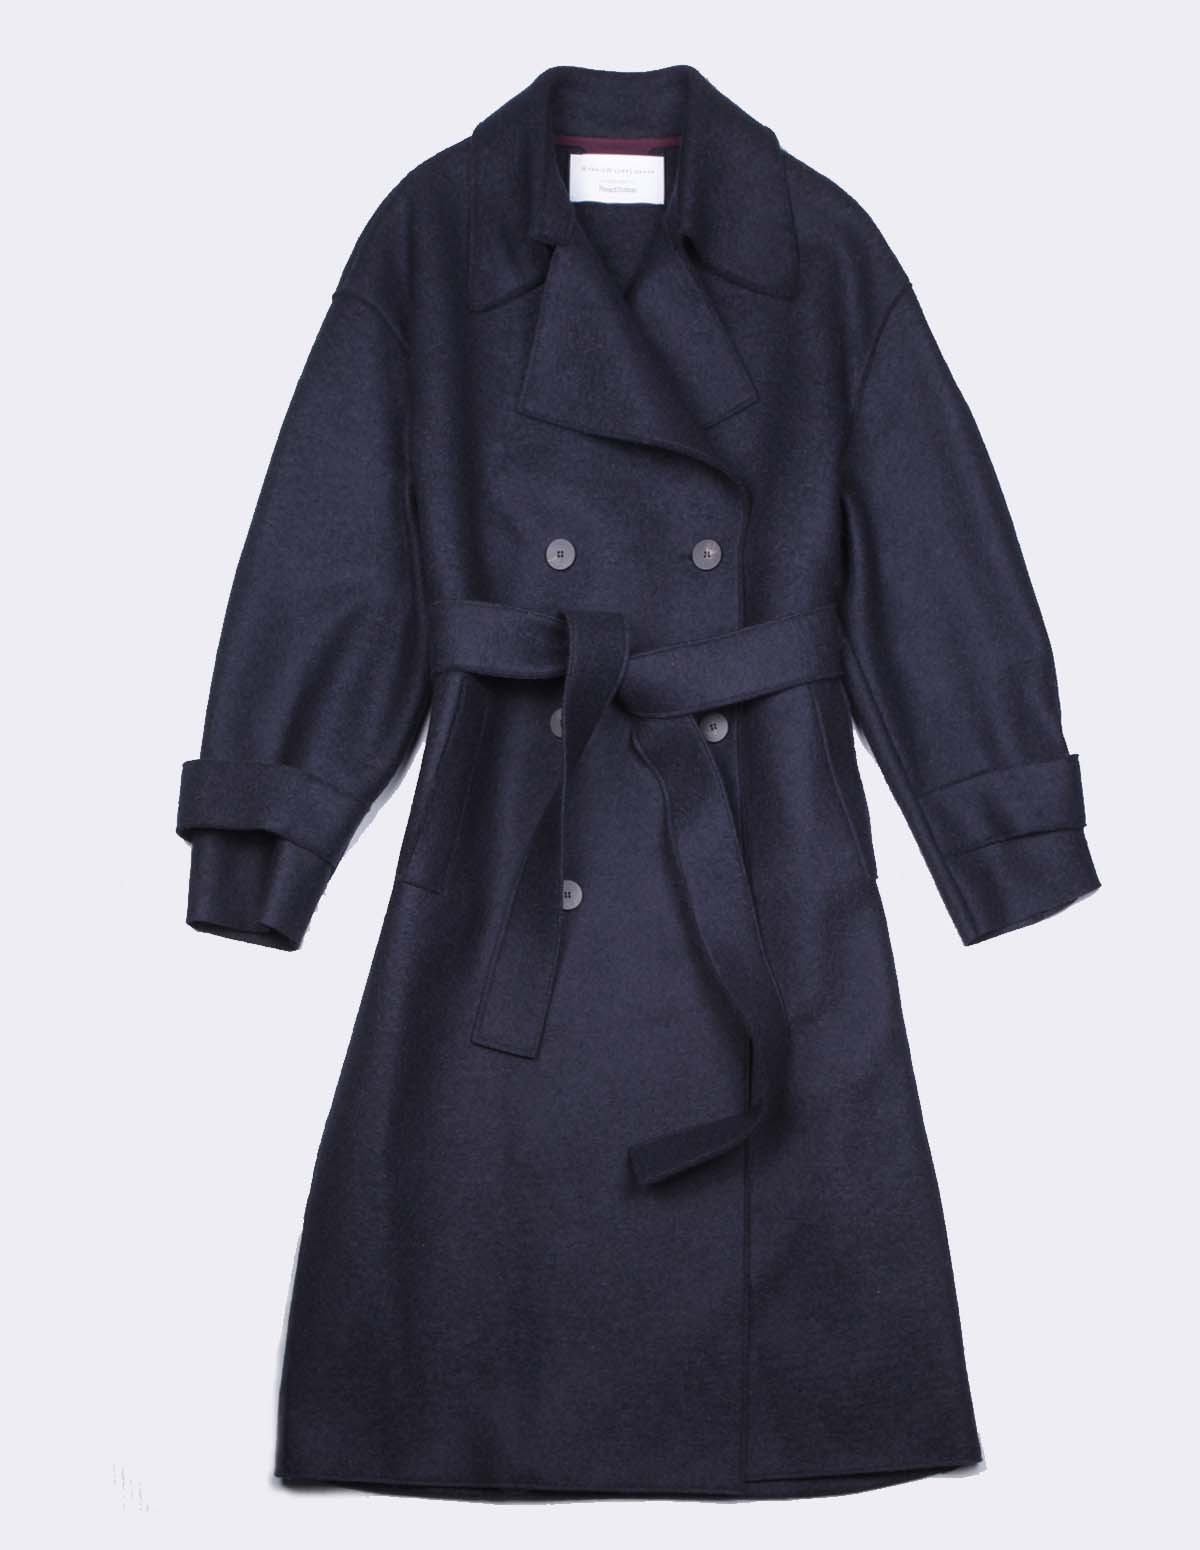 Hwl Oversized Trench Coat - DARK BLUE